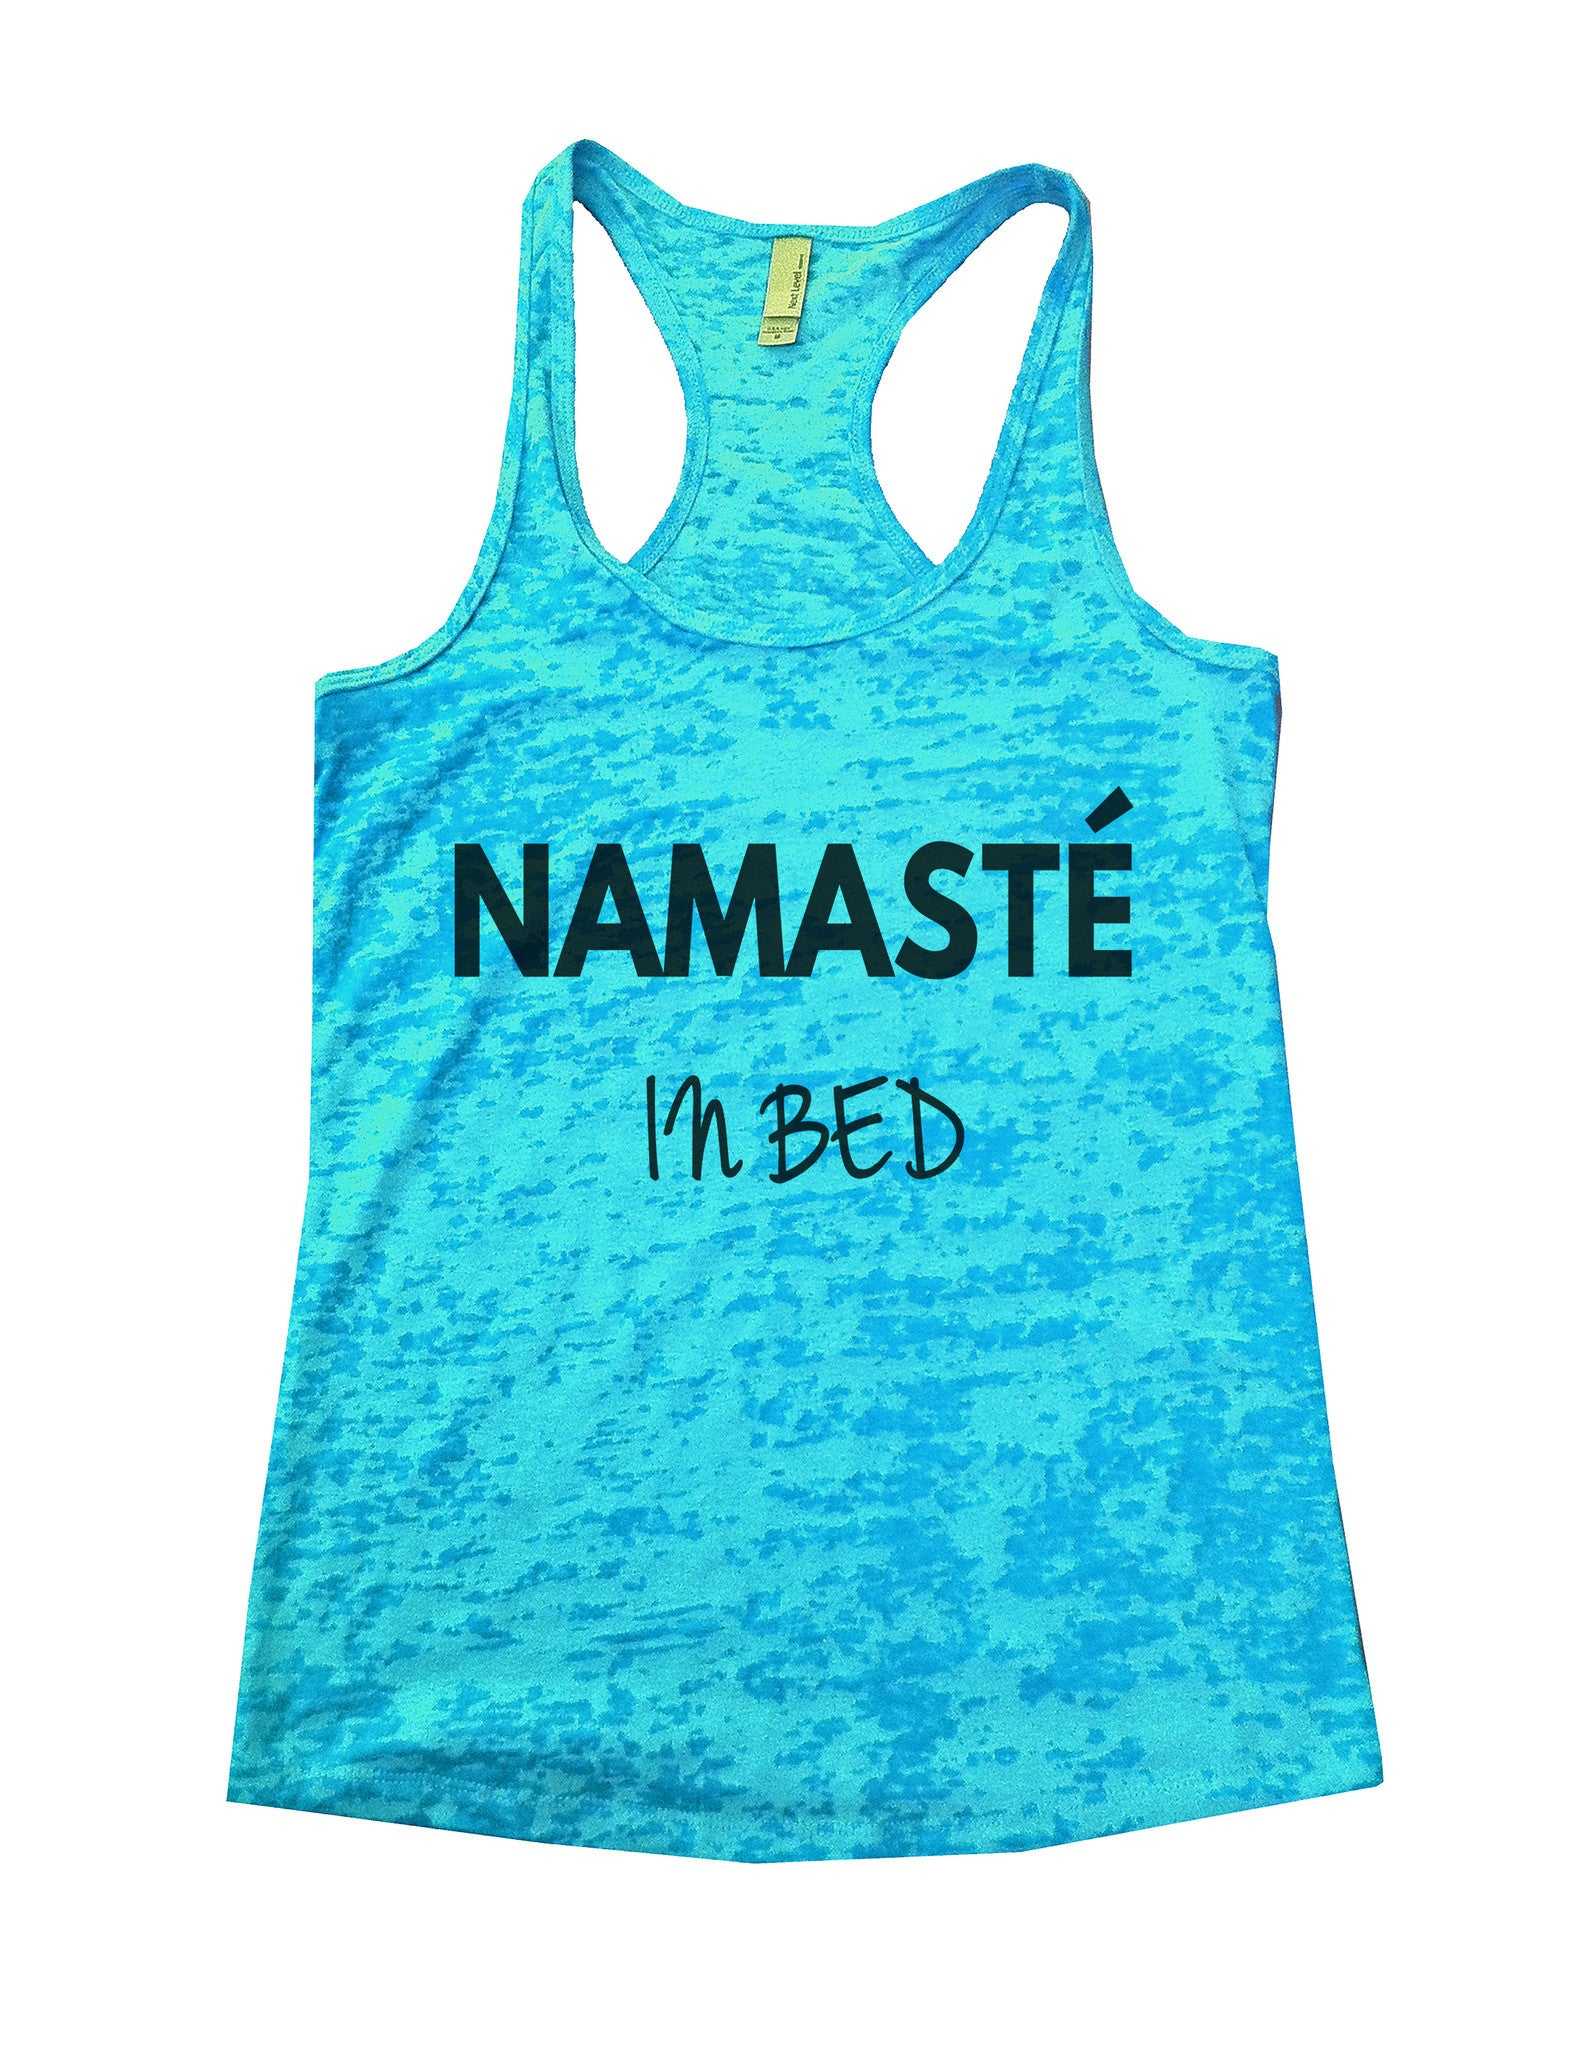 Namaste In Bed Burnout Tank Top By BurnoutTankTops.com - 647 - Funny Shirts Tank Tops Burnouts and Triblends  - 1